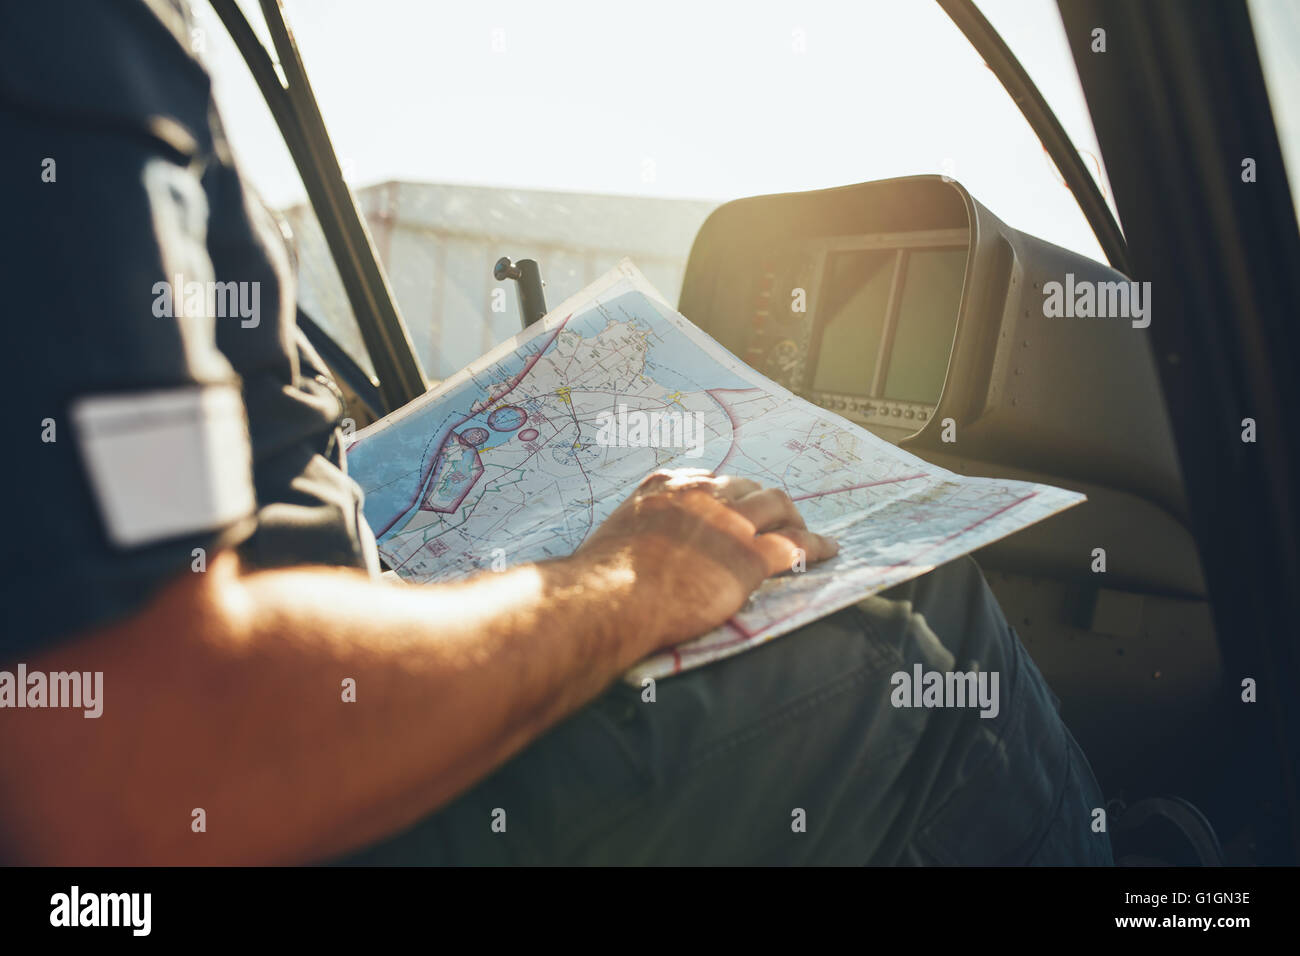 Close up shot of a helicopter pilot studying the flight route map while sitting in the cockpit of the aircraft. - Stock Image